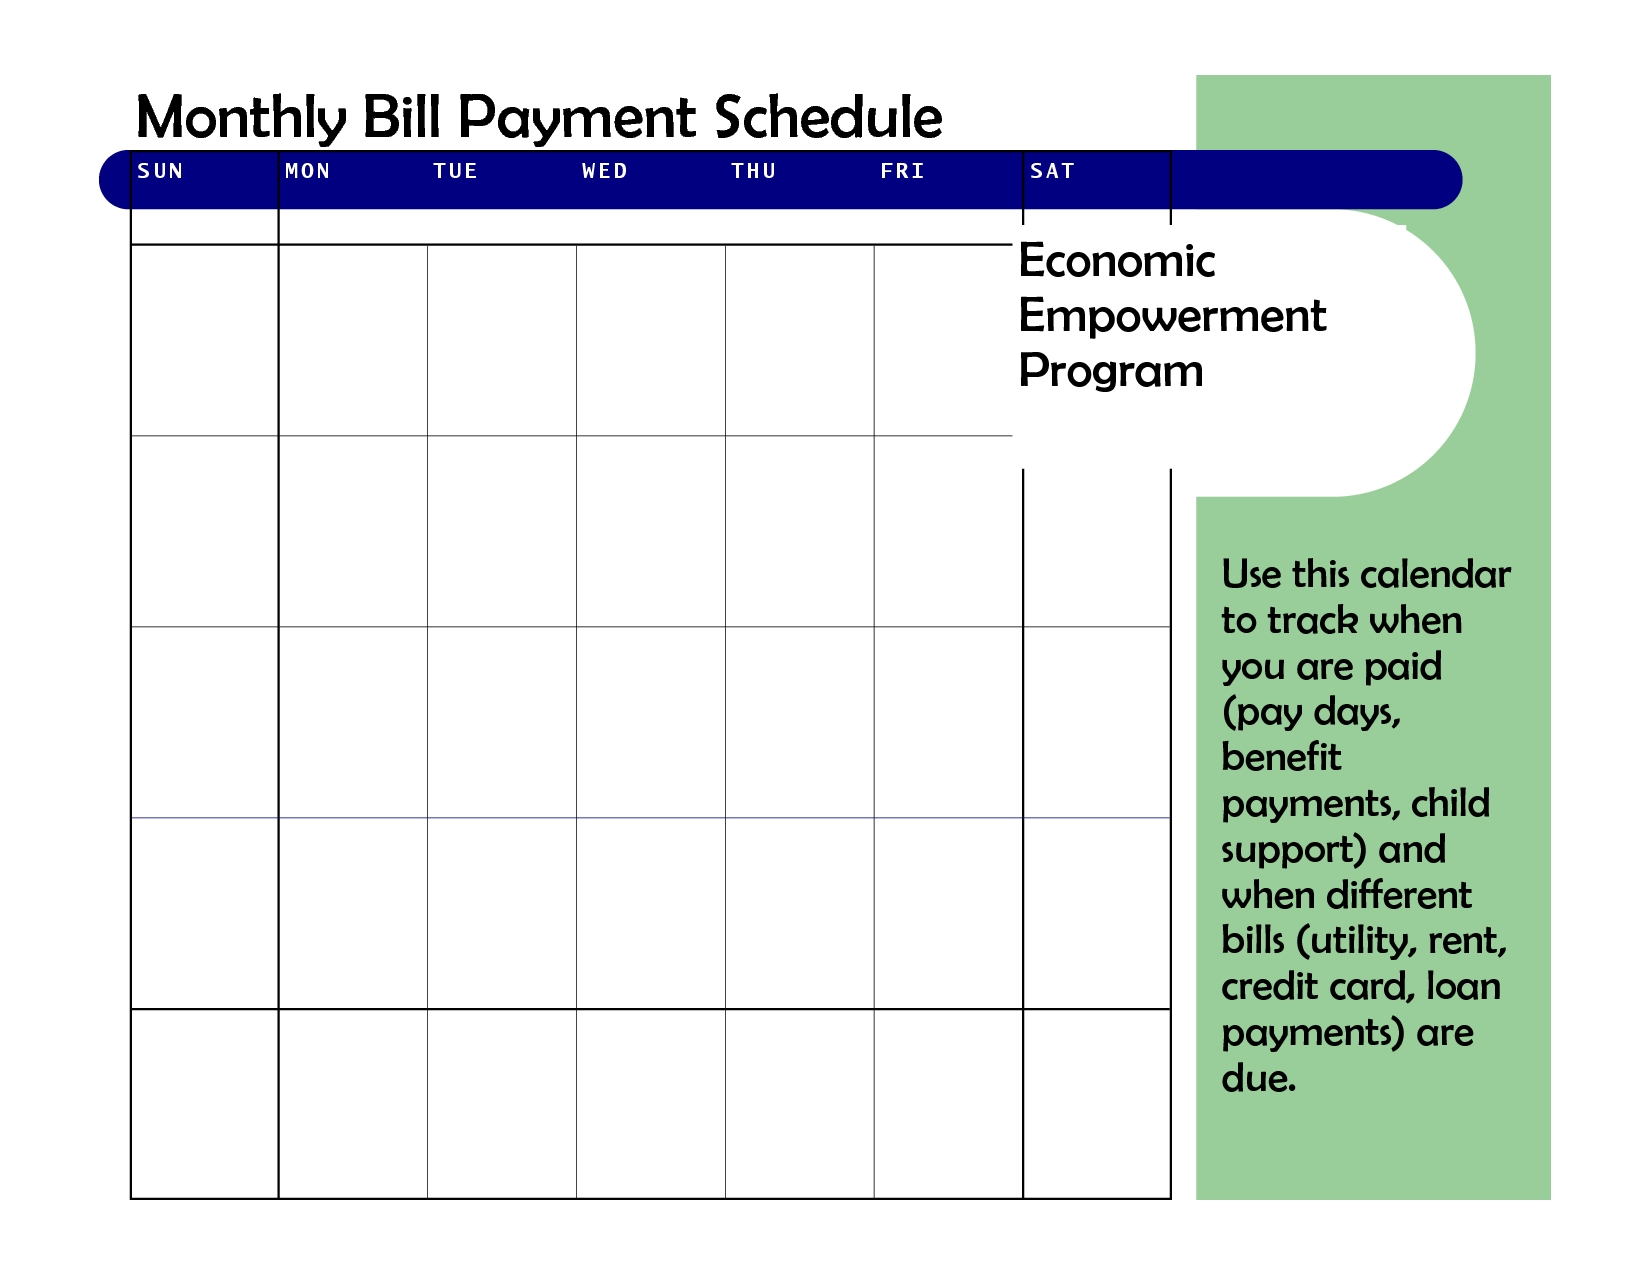 Monthly Based Bill Payment Schedule Template : Vatansun  Utility Bills Payment Printable List